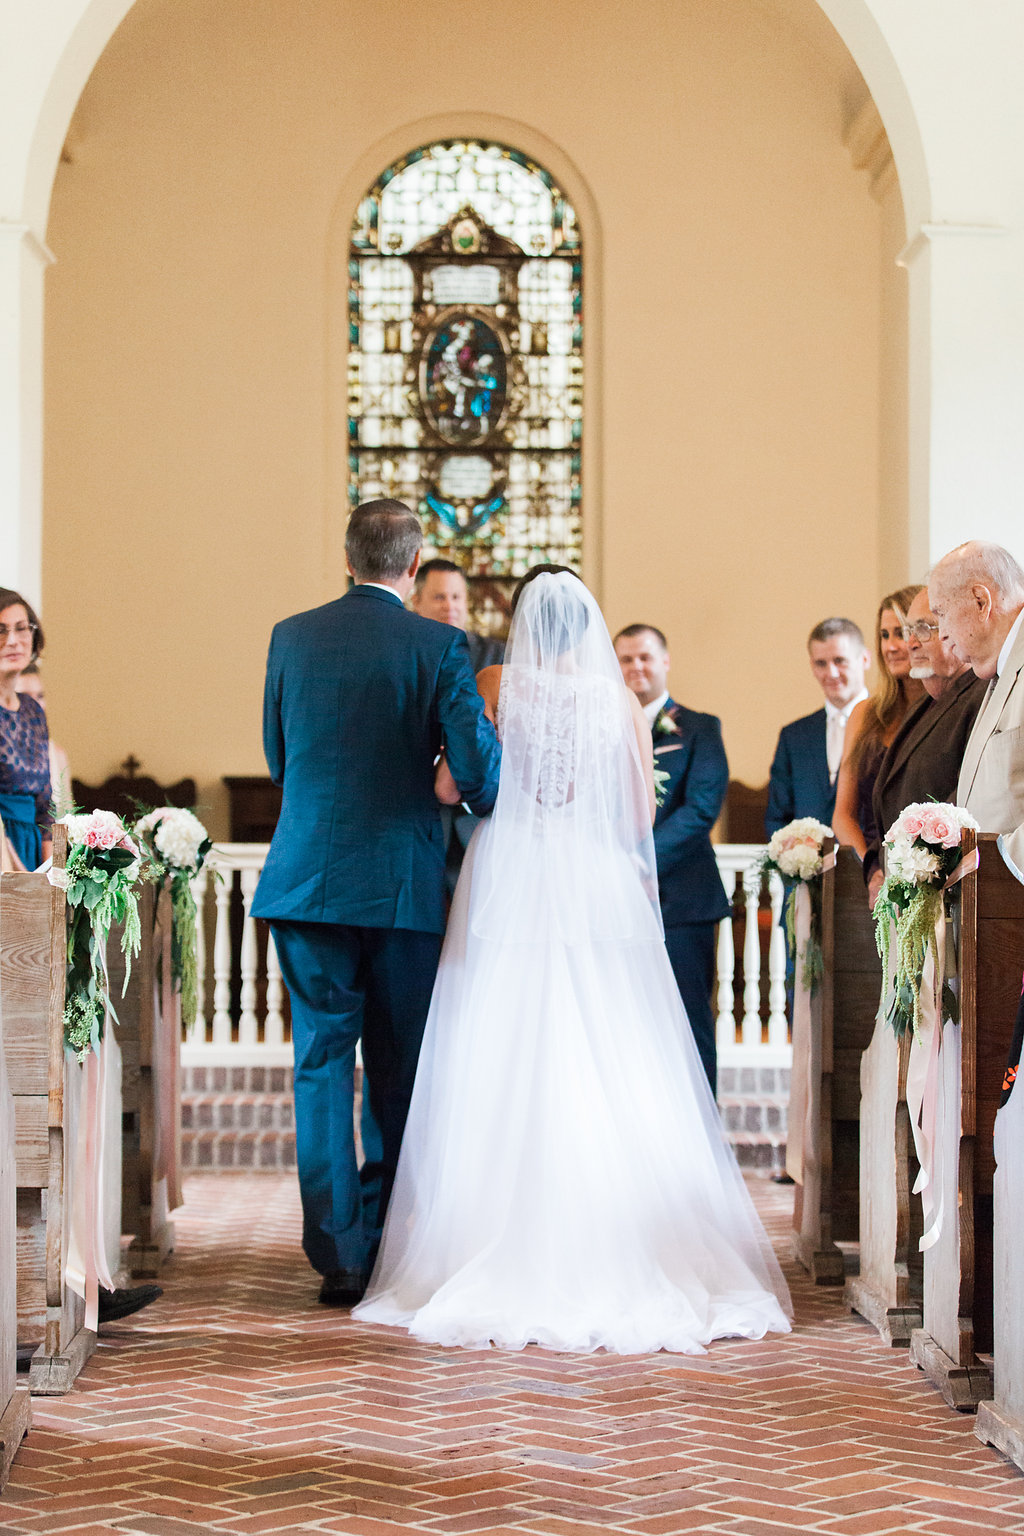 the-happy-bloom-photography-ivory-and-beau-wedding-planning-ivory-and-beau-bridal-boutique-whitfield-chapel-wedding-10-downing-wedding-savannah-wedding-historic-savannah-wedding-savannah-wedding-planner-savannah-weddings-a-to-zinnias-30.jpg